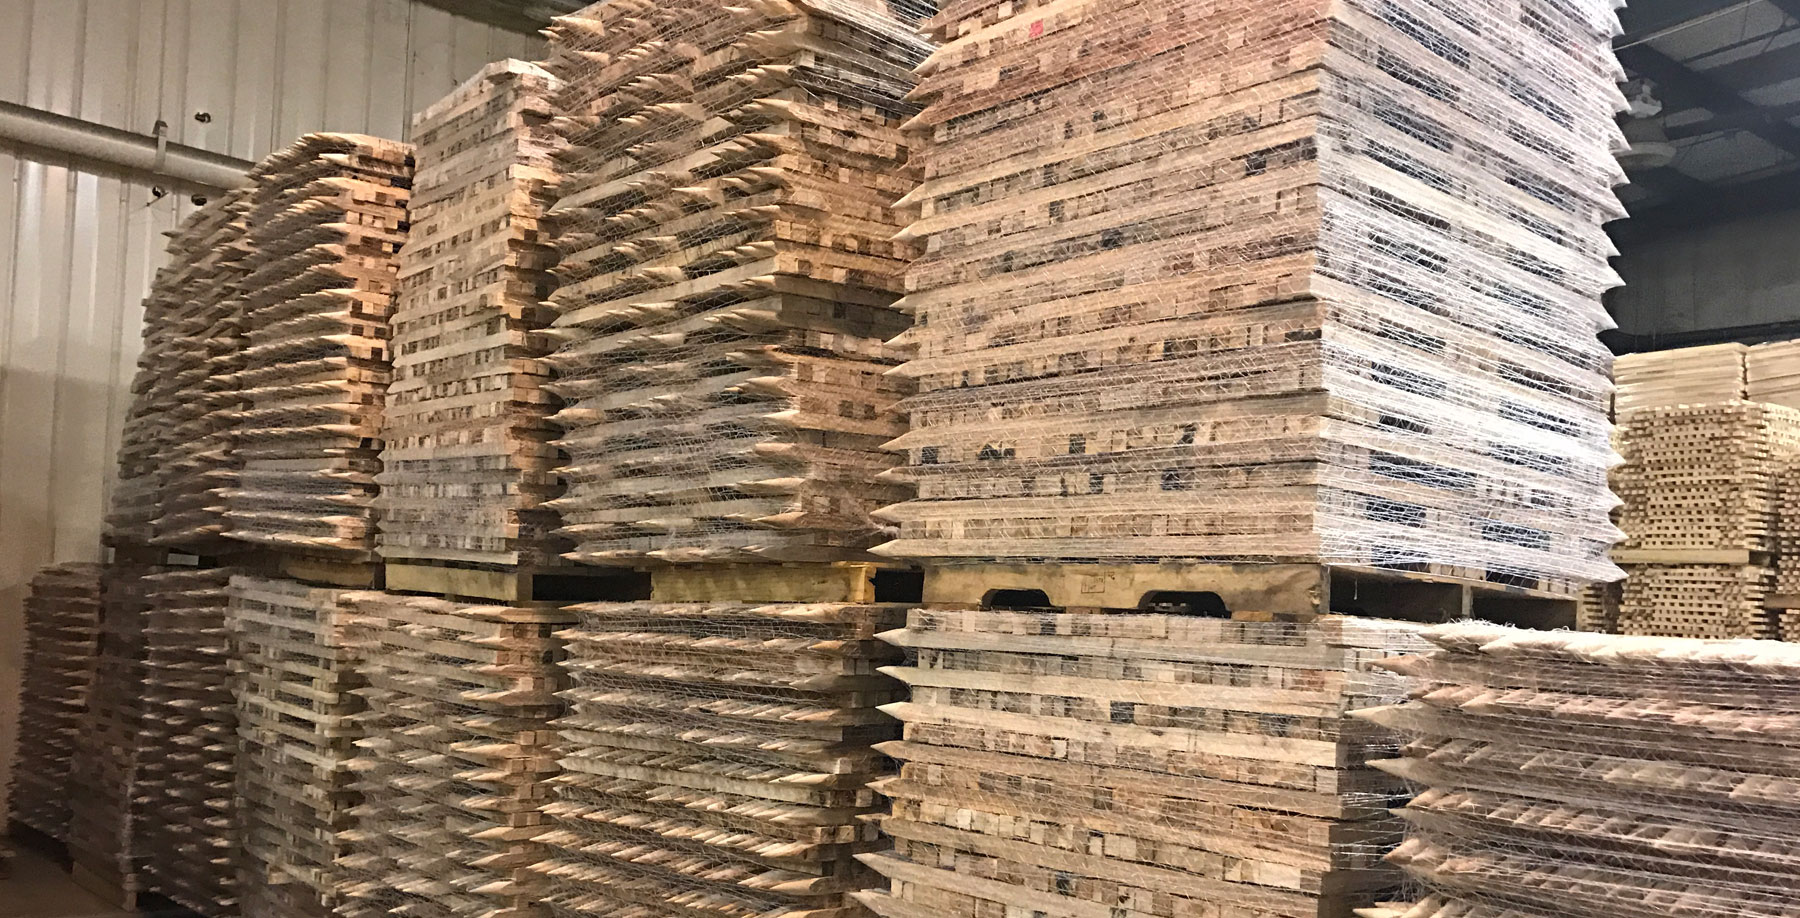 Wood-Stakes-Stacked-Pointed.jpg